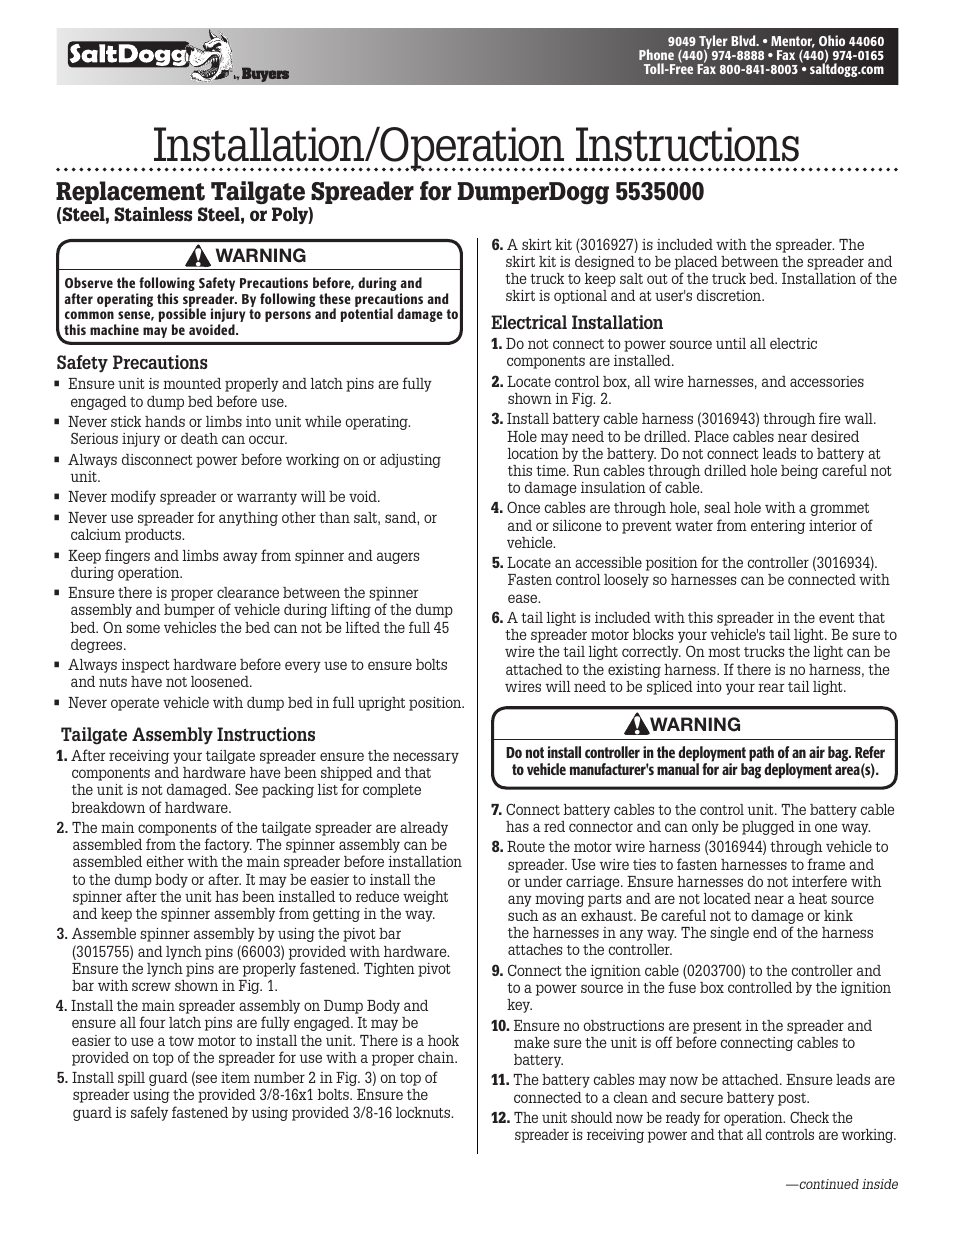 Saltdogg Replacement Tailgate Spreader For Dumperdogg 5535000 User Salt Wiring Diagram Manual 4 Pages